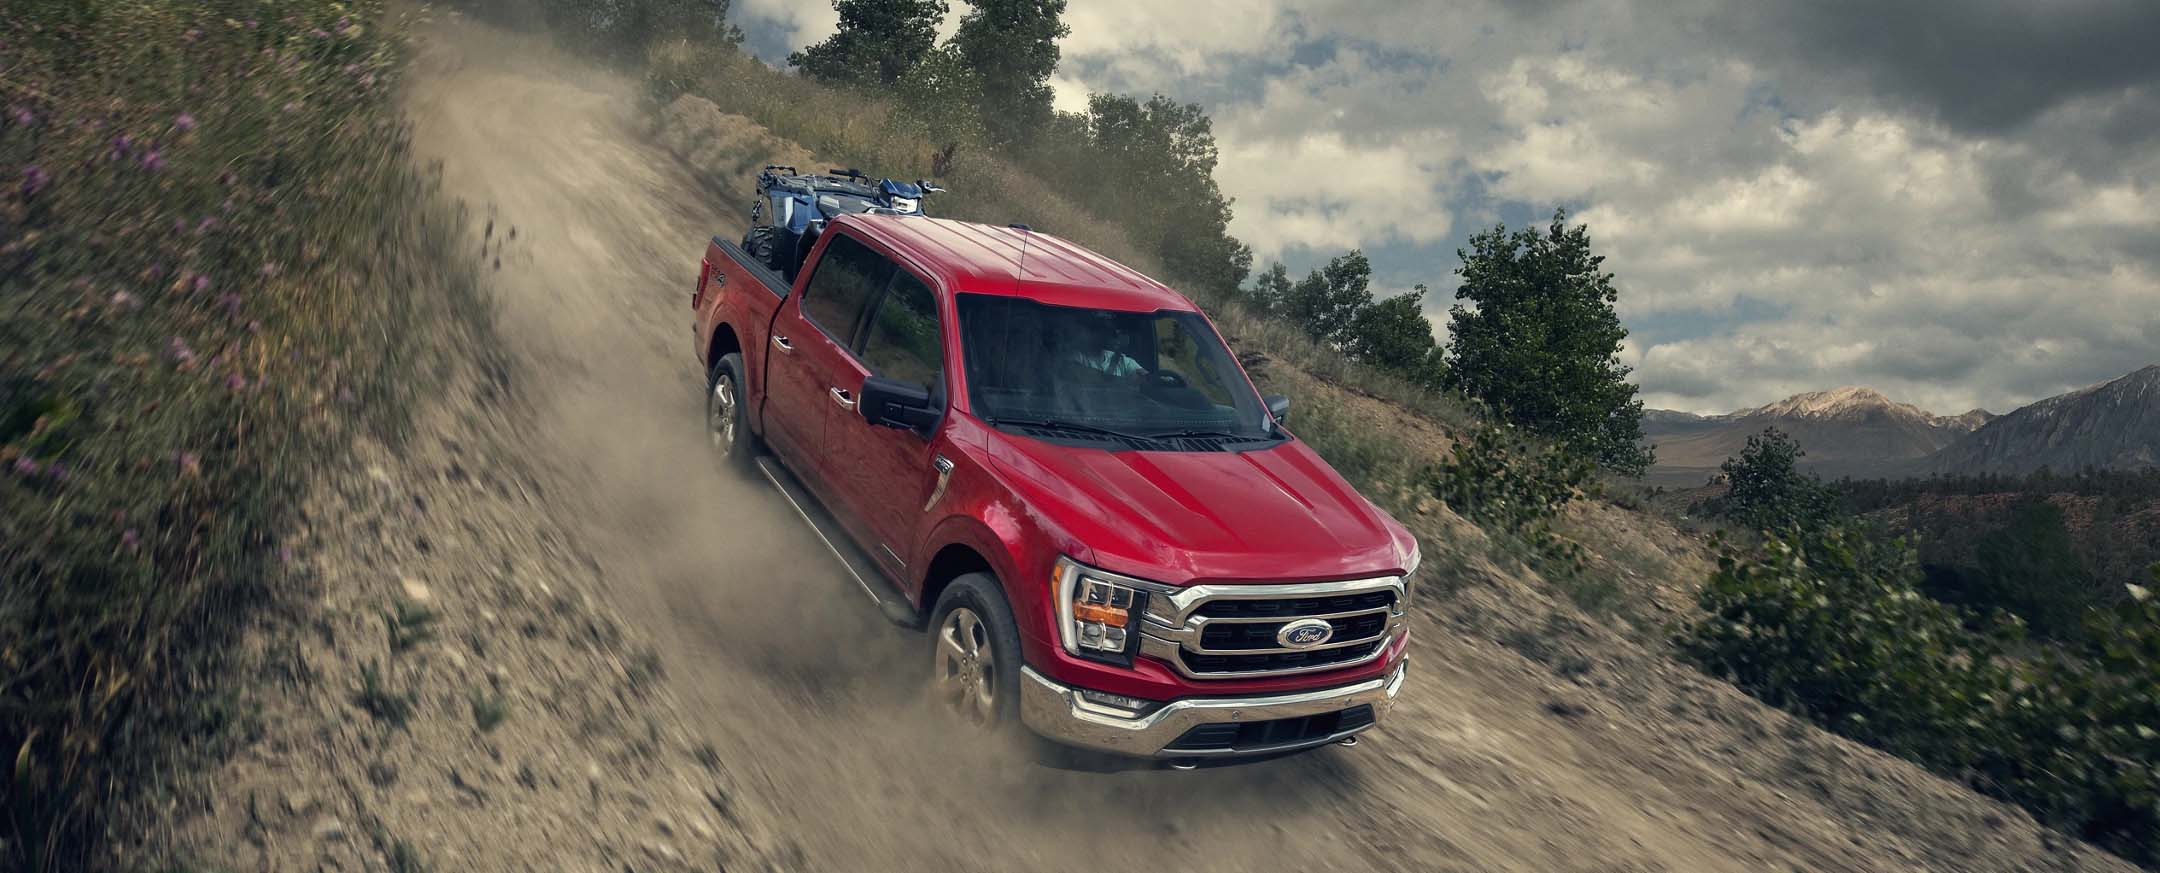 Ford F-150 - Image